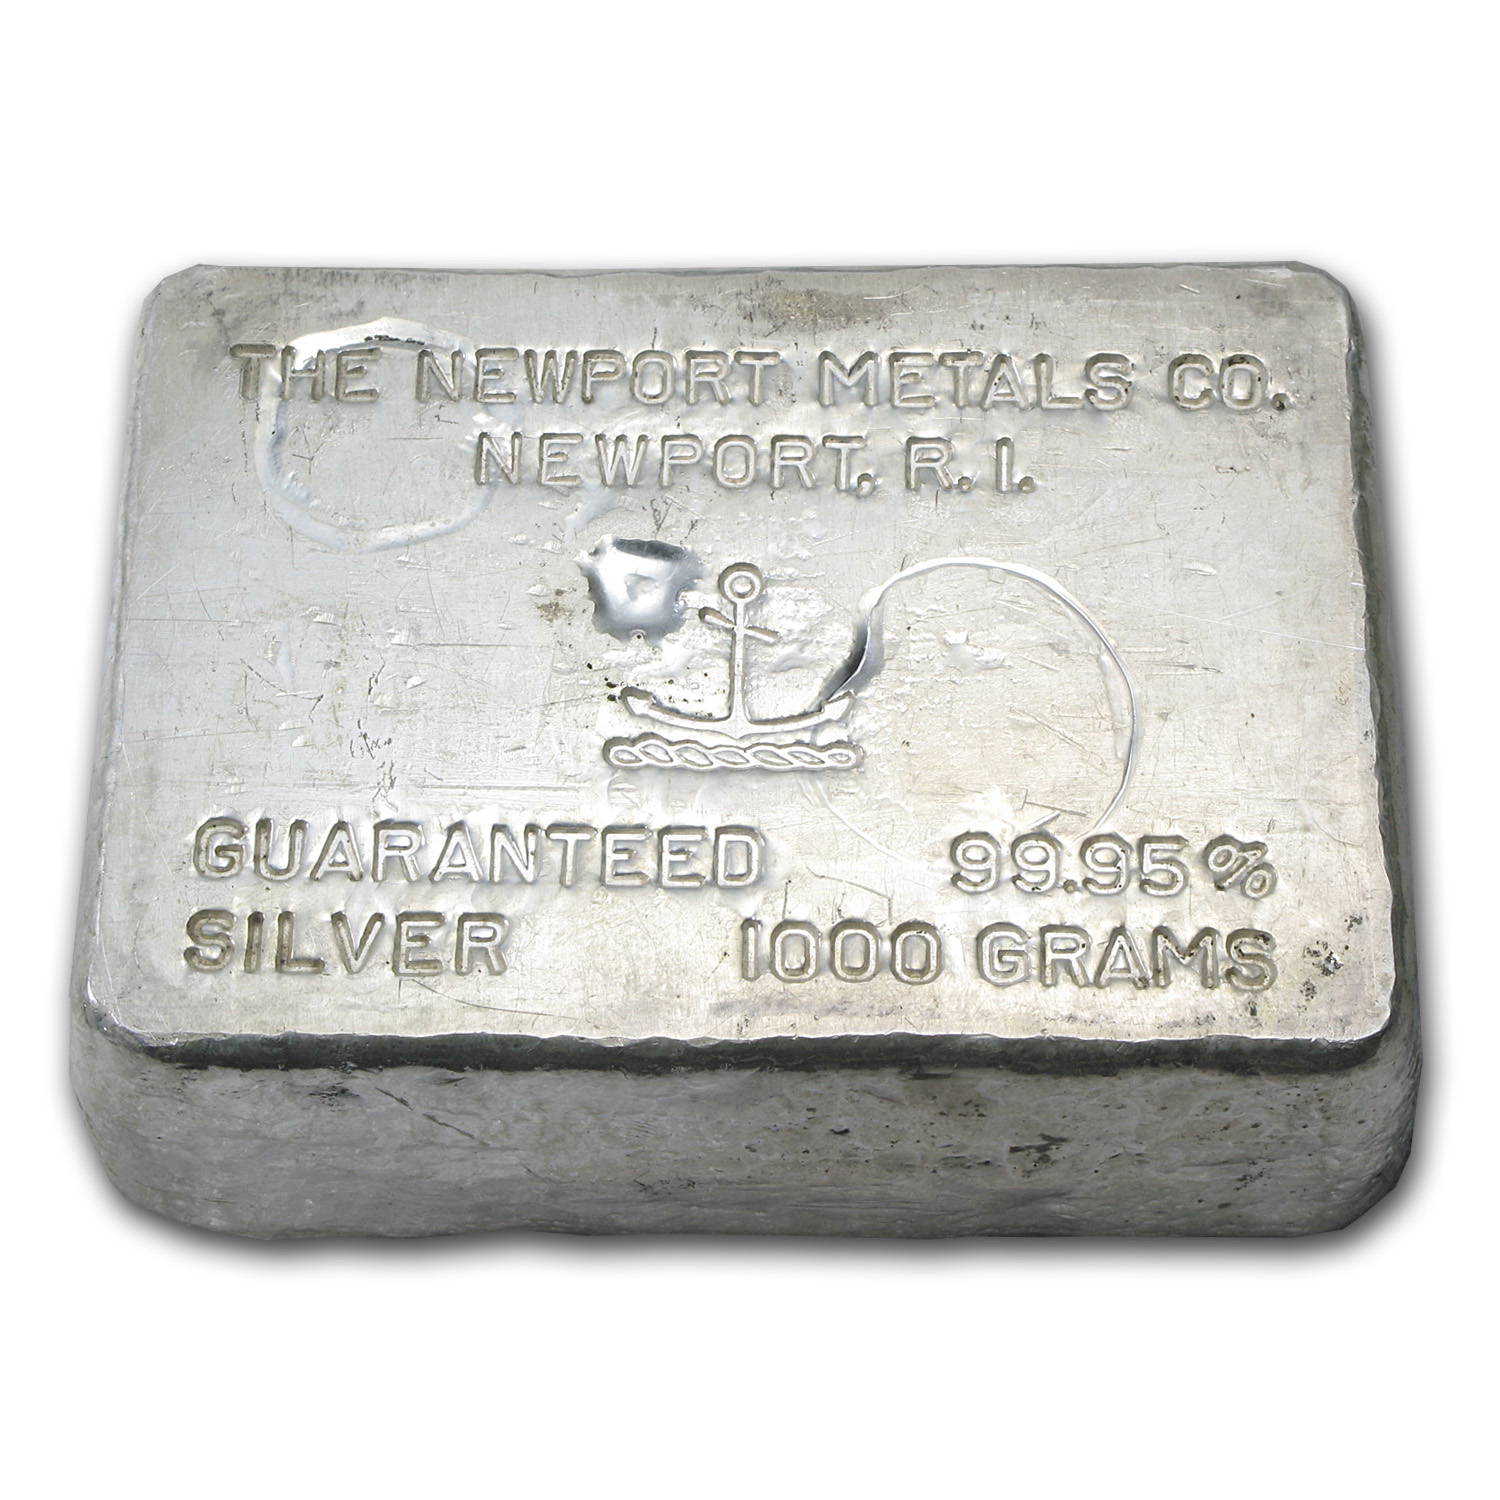 1 kilo Silver Bar - Newport Metals Co. (1000 Gram)